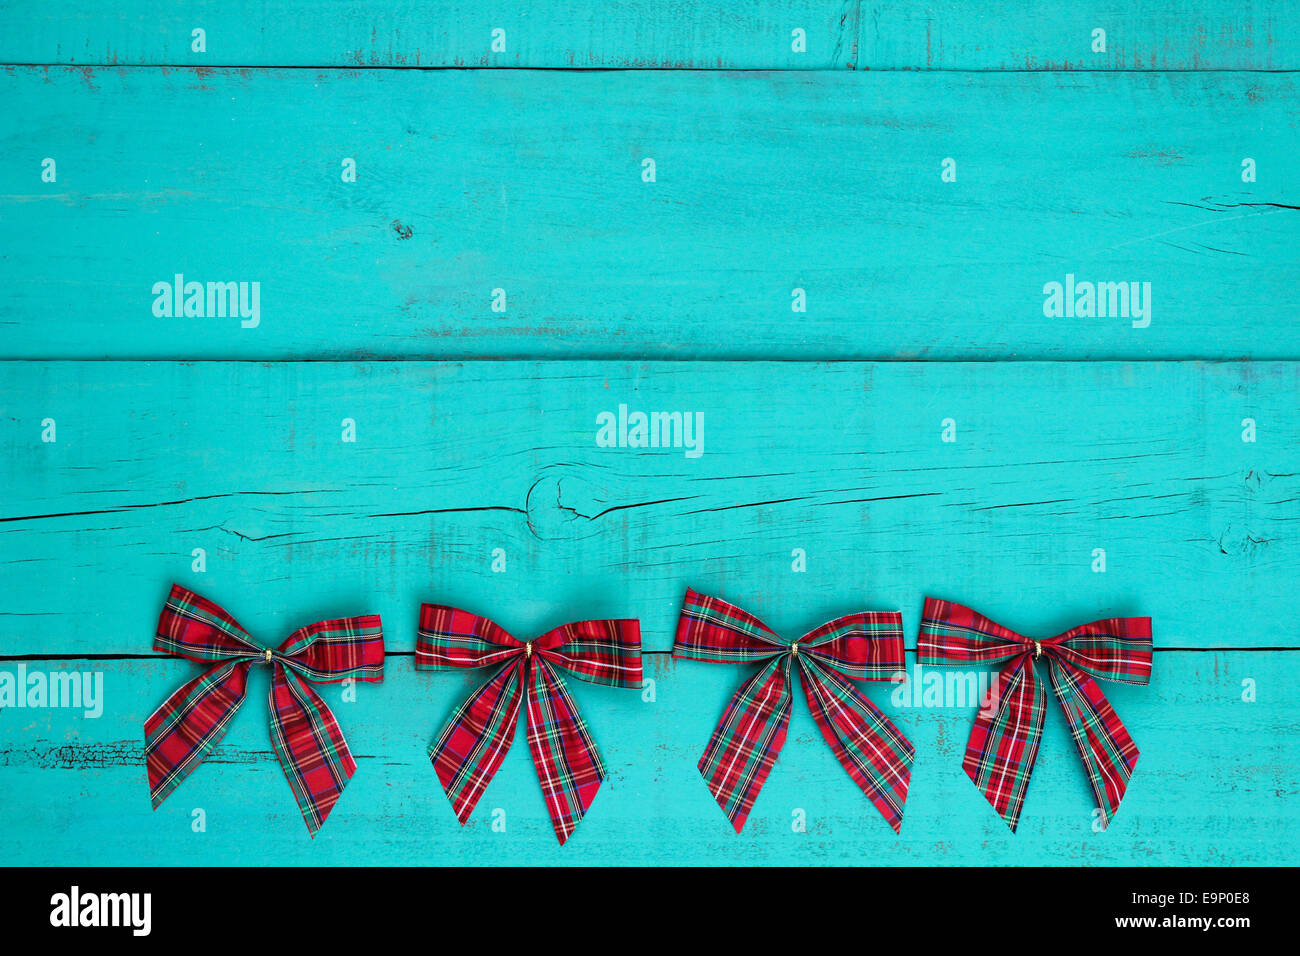 Blank Antique Teal Blue Weathered Wood Background With Red